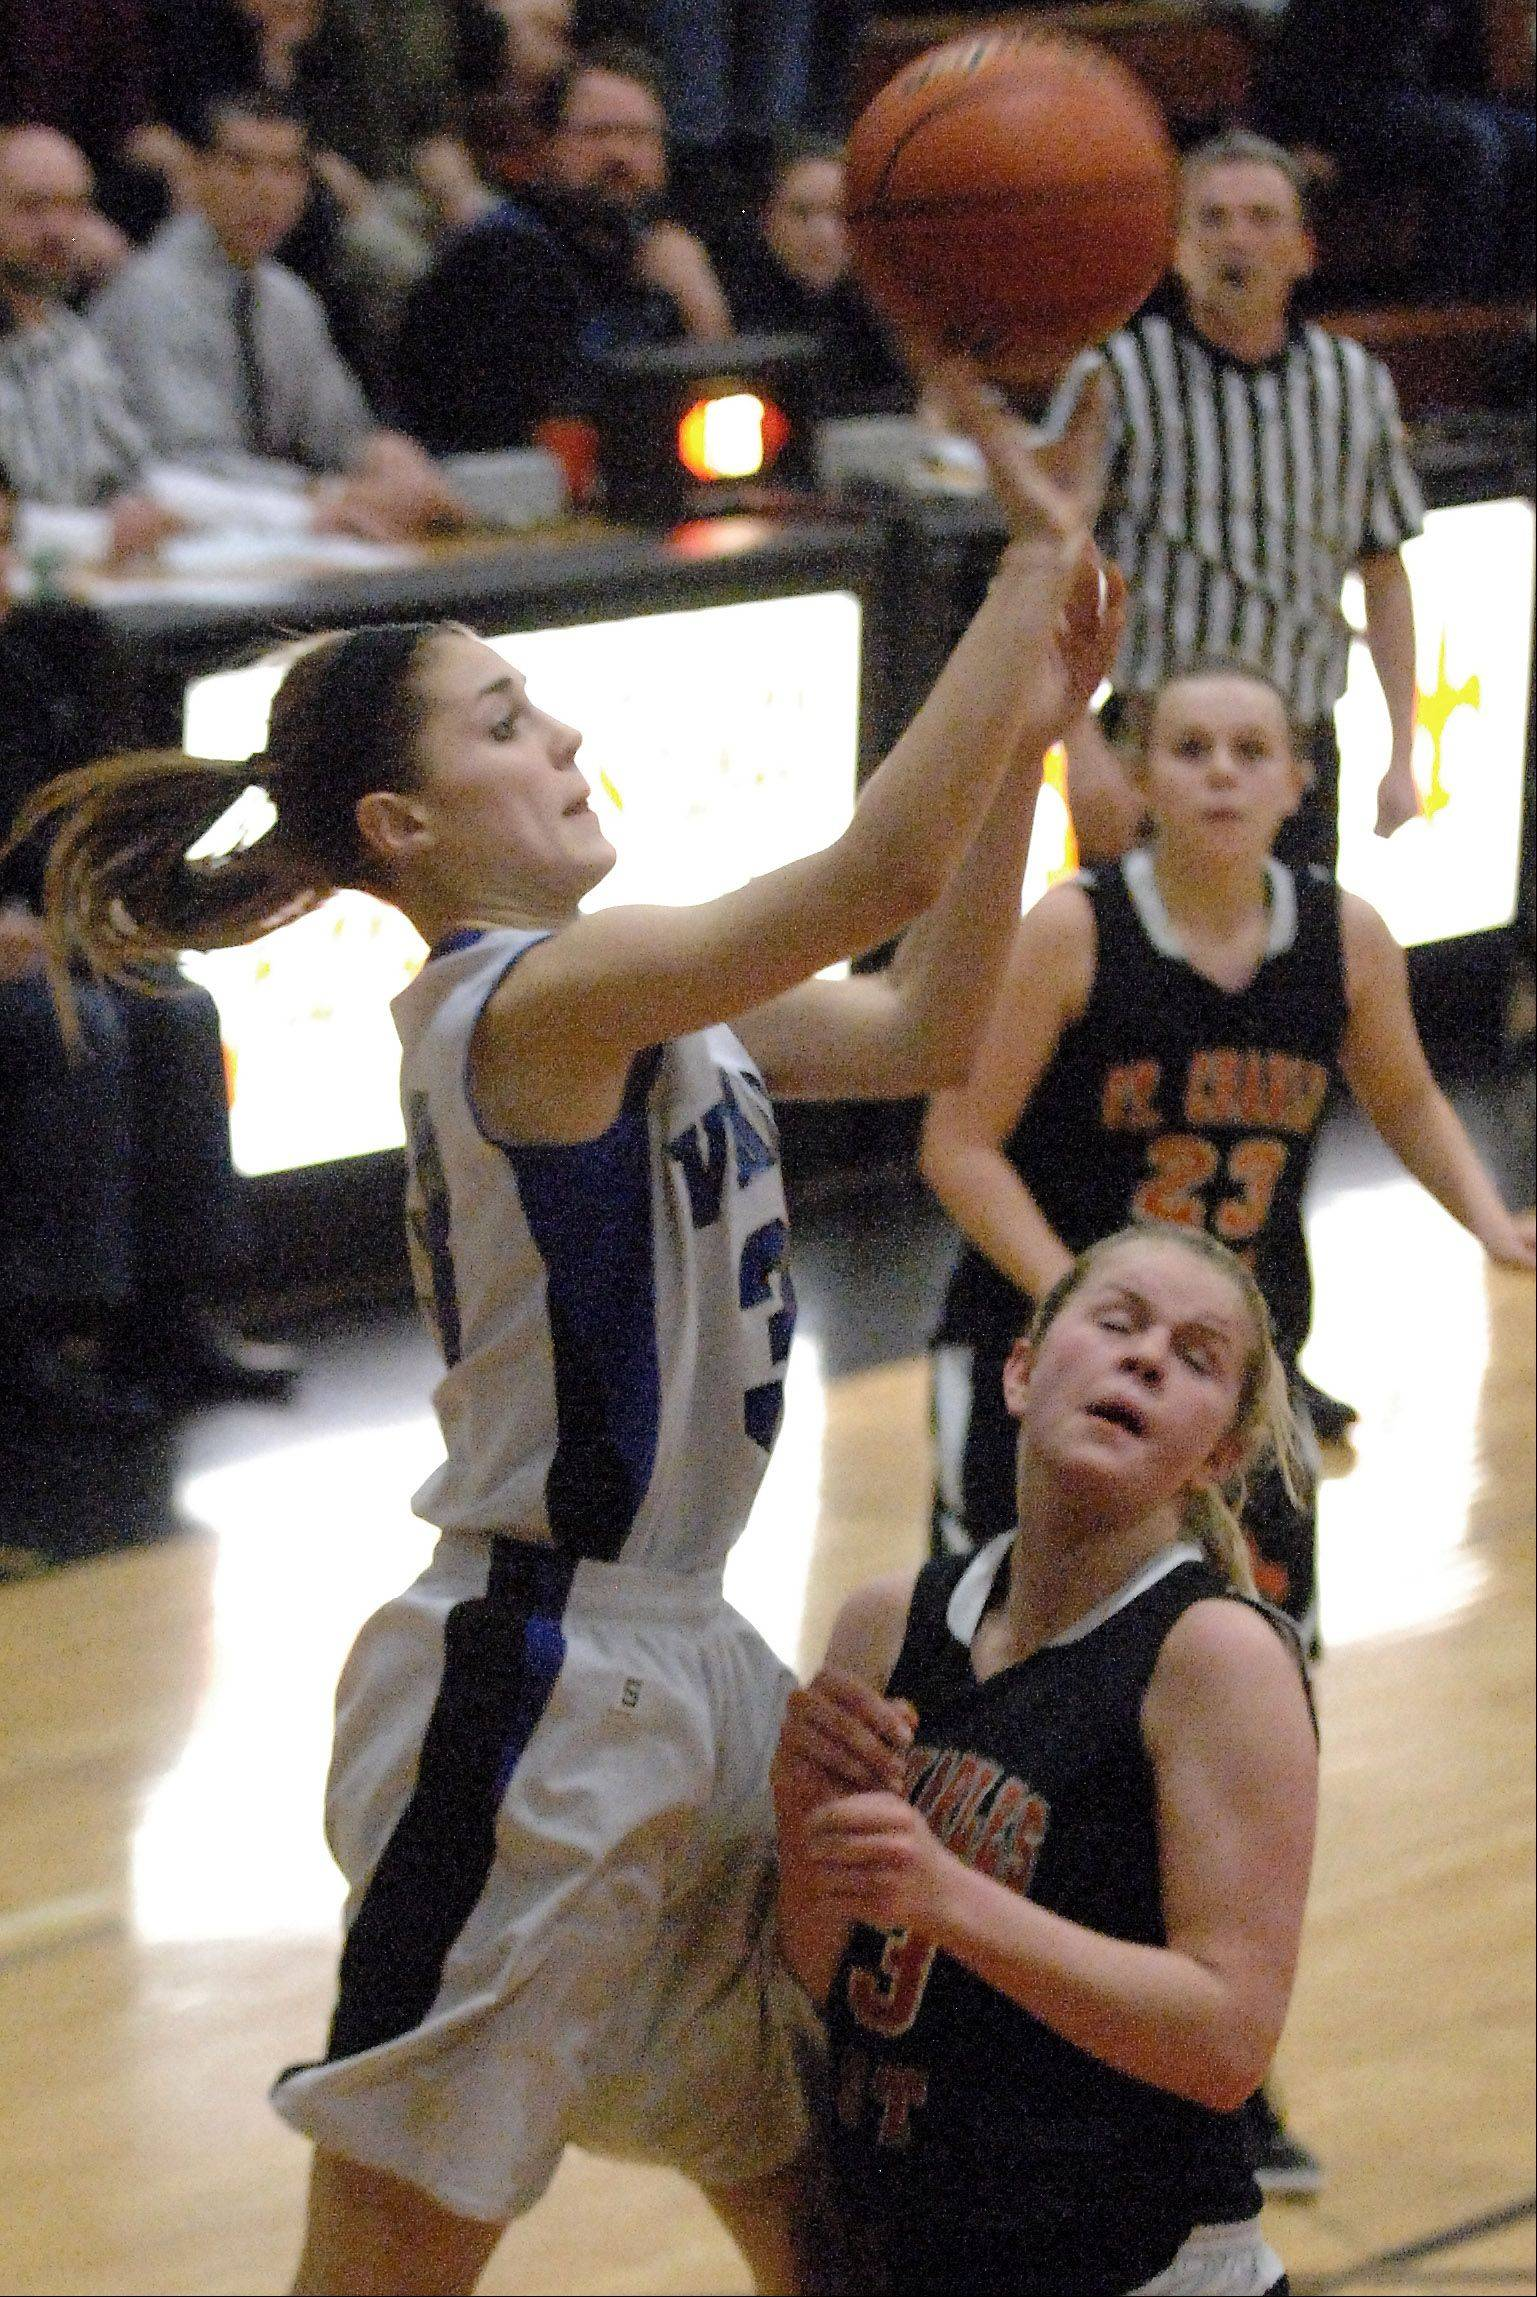 Geneva's Madeline Dunn scores as the third quarter ends.